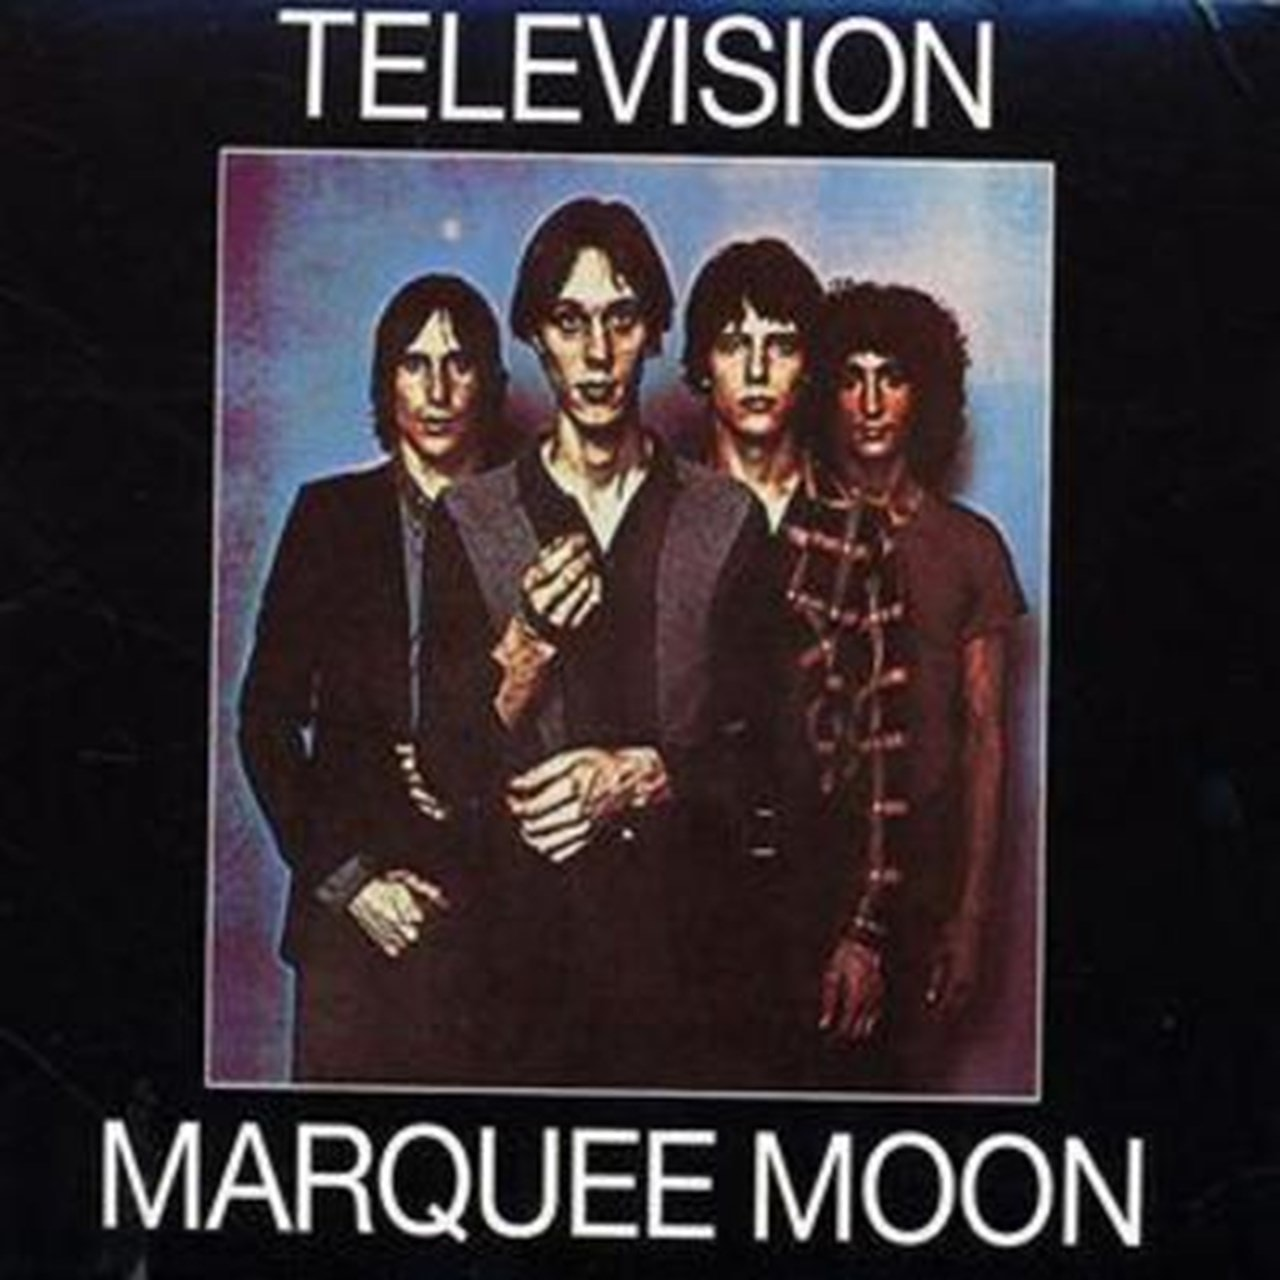 Marquee Moon (Remastered and Expanded) - 1